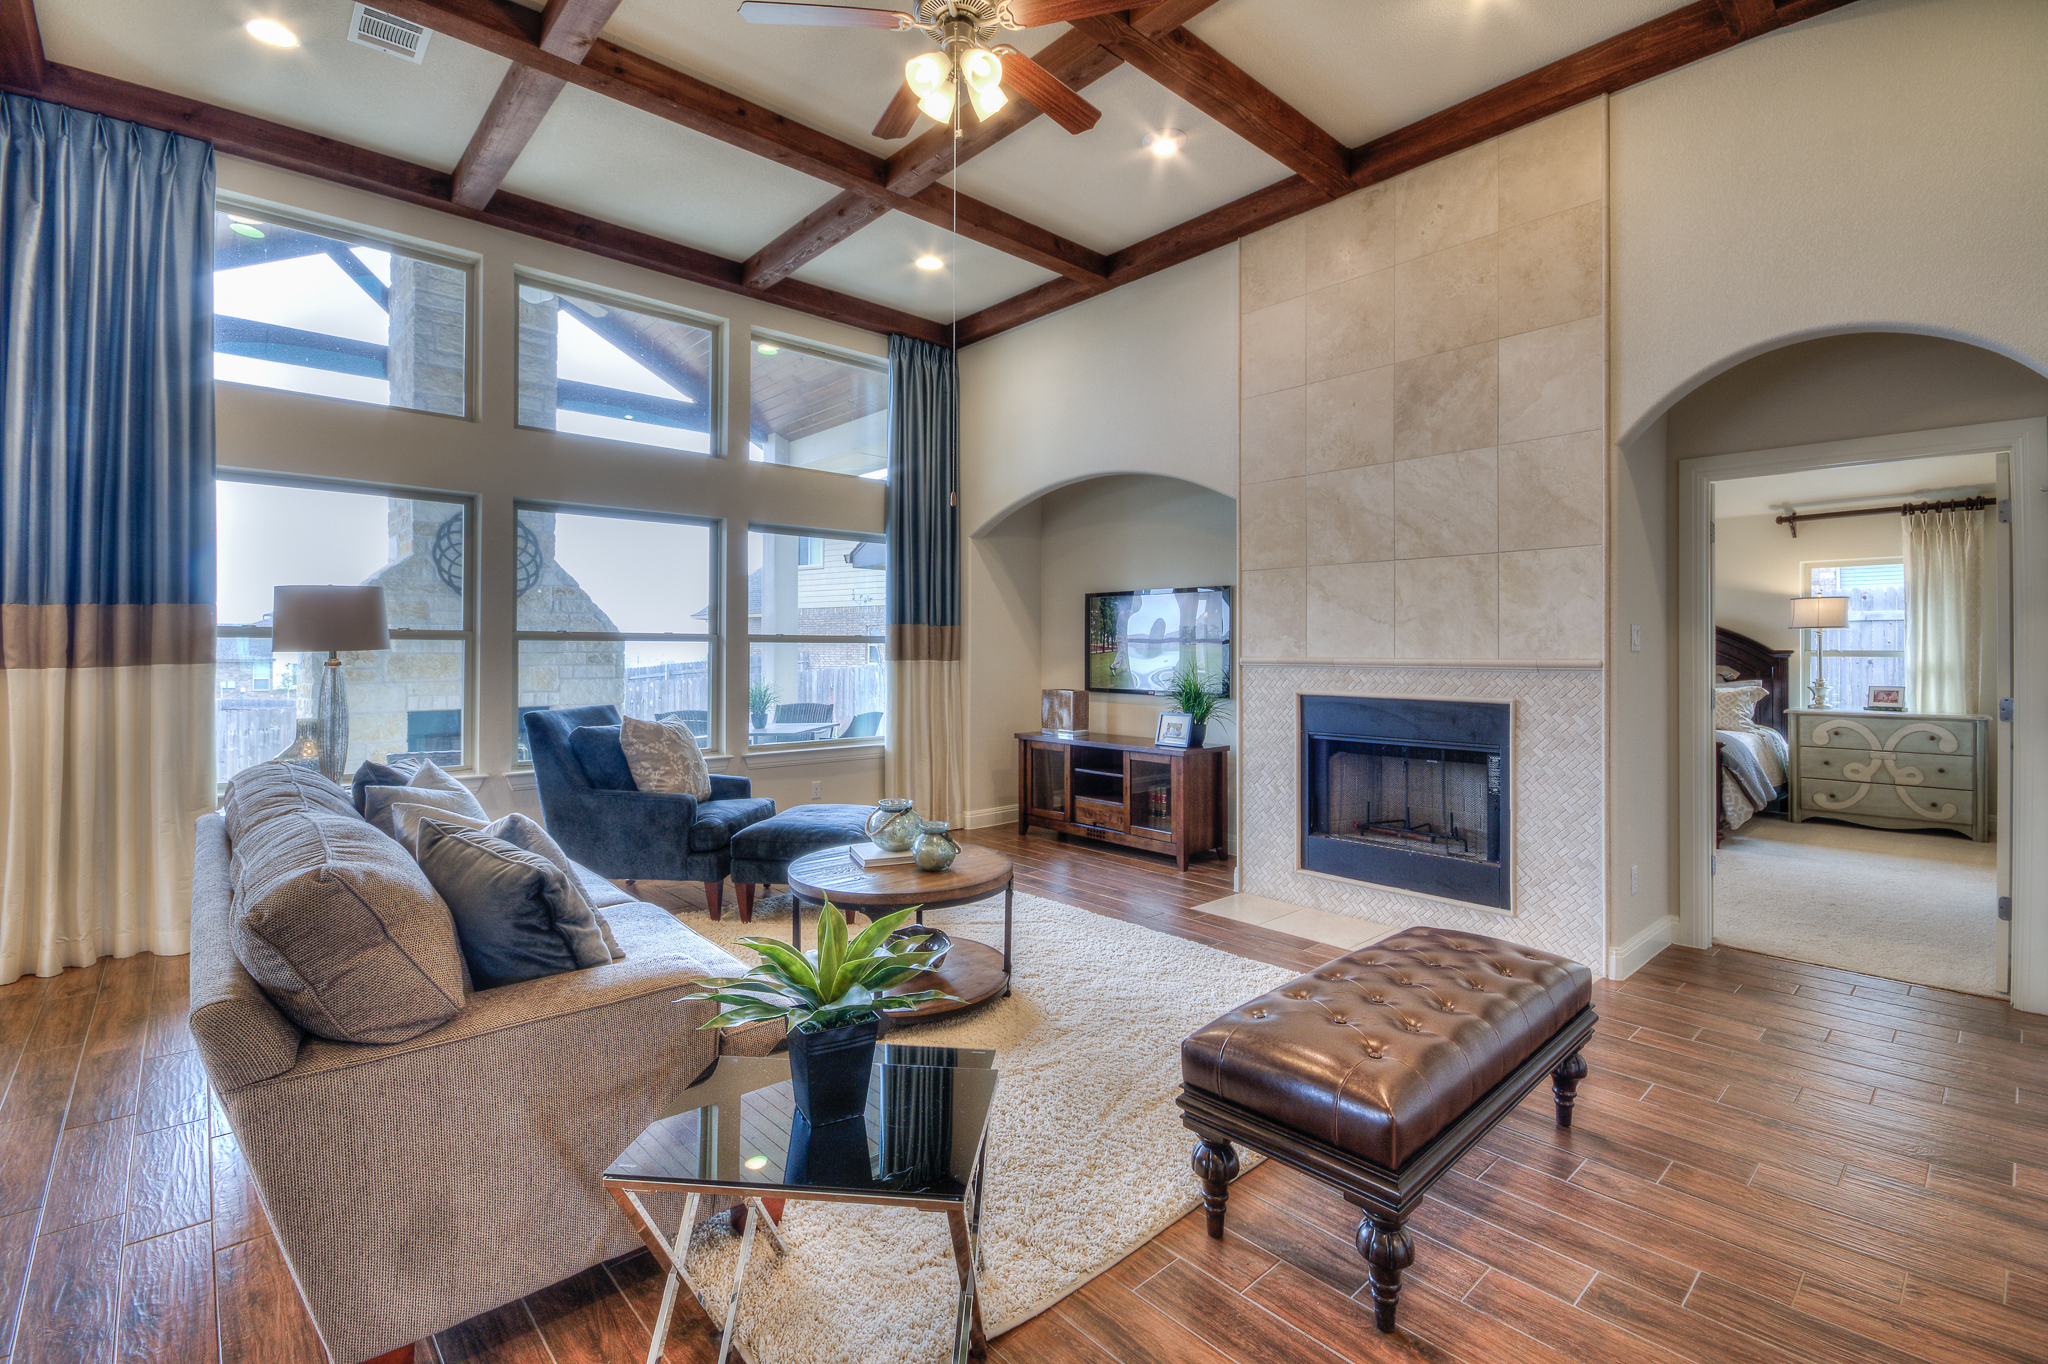 Neutral living room interior design for model home by Michelle Thomas Design